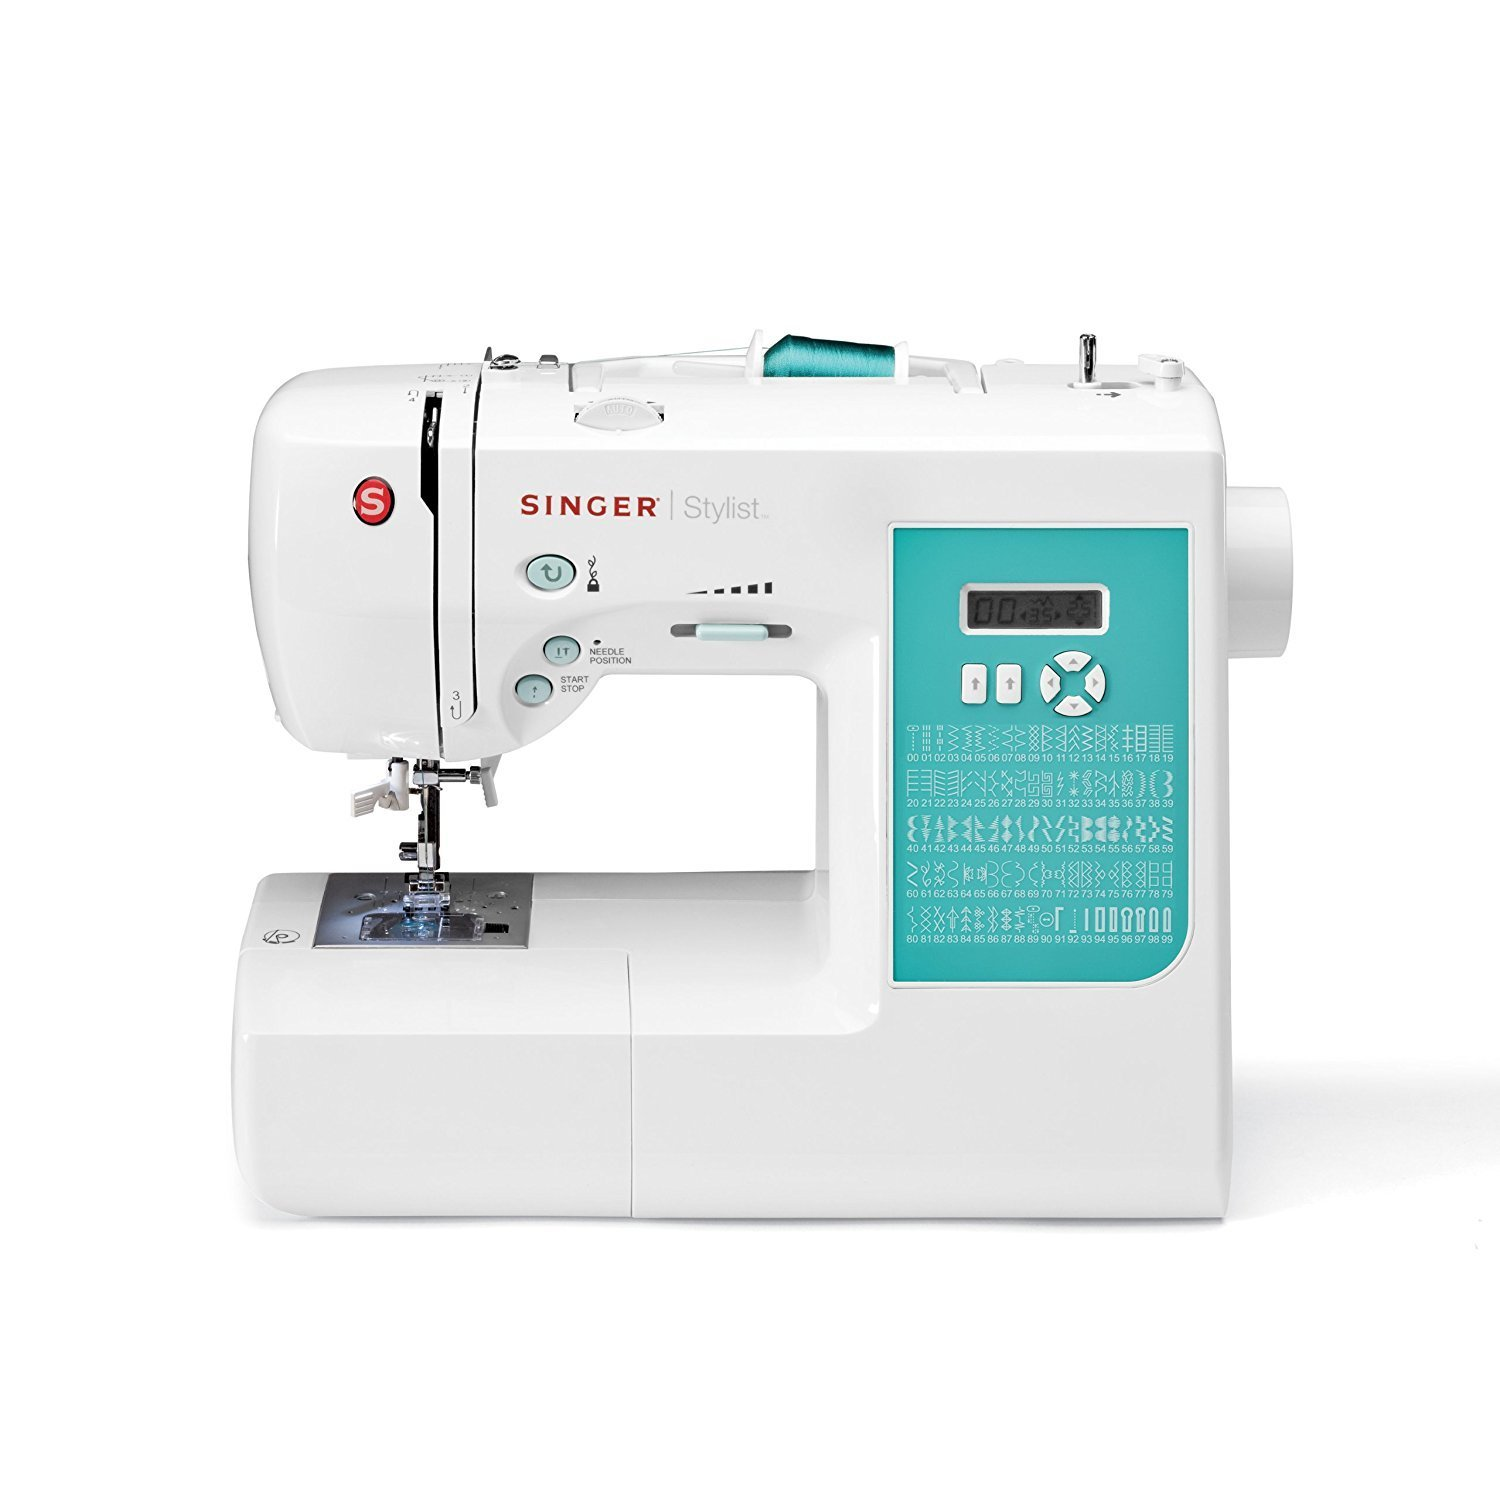 Singer sewing and embroidery machine: Definitely the best sewing and embroidery machine Singer has to offer